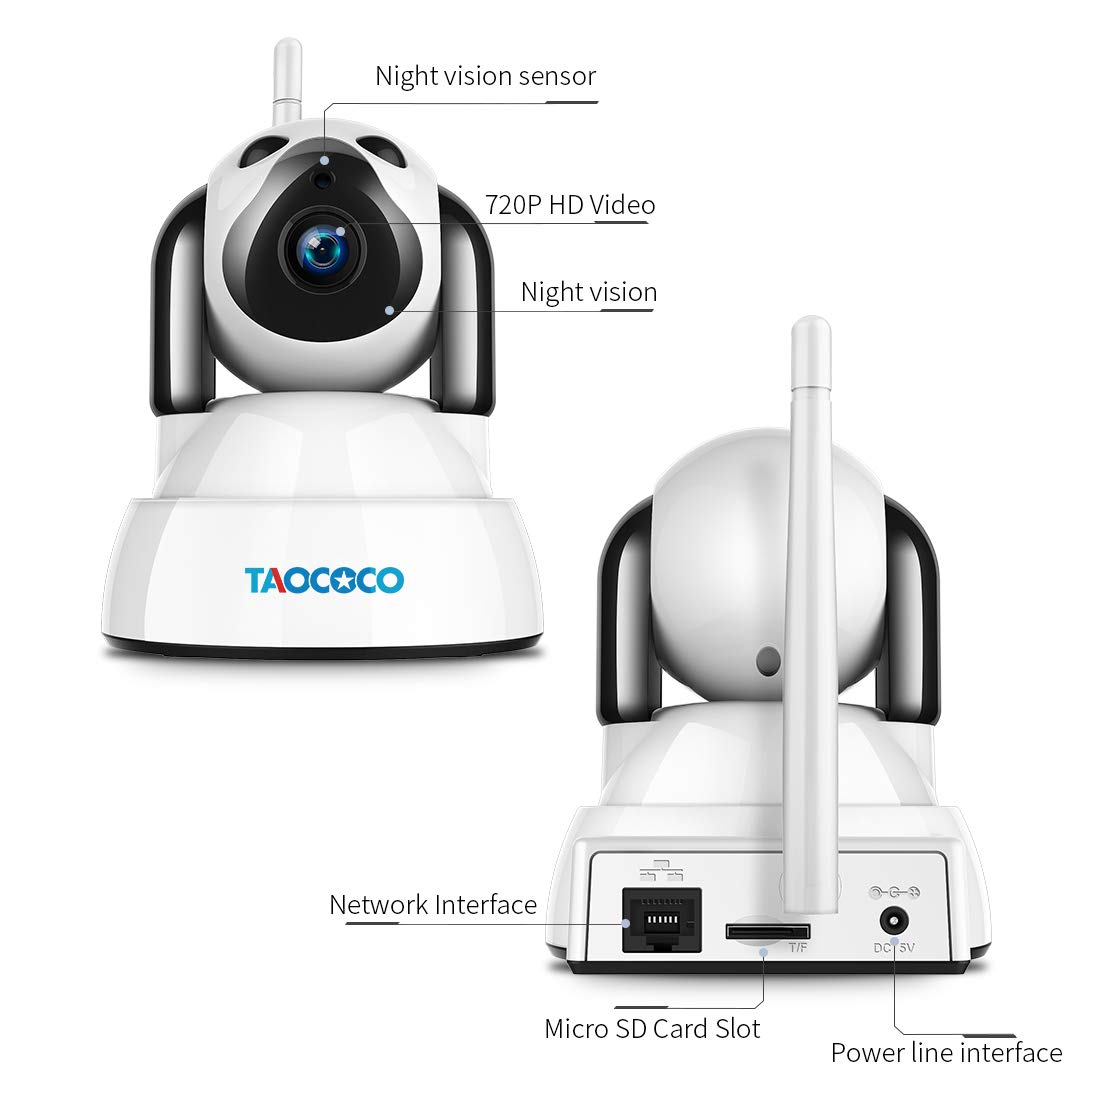 TAOCOCO Wireless Security Camera, 720P HD WiFi IP Camera, Pet Baby Monitor, Home Dog Camera Nanny Cam with Pan/Tilt/Zoom, Motion Detection, Two Way Talking, Infrared Night Vision